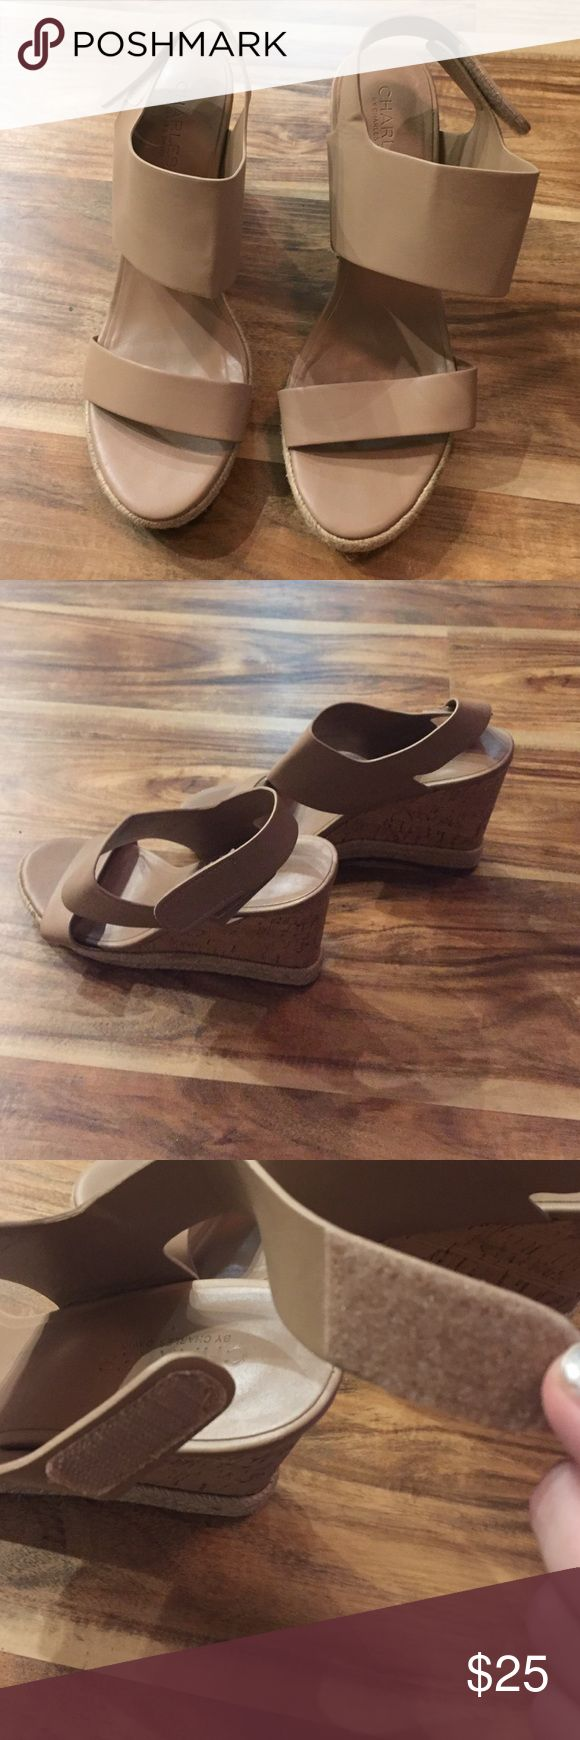 CHARLES DAVID NUDE WEDGES WORN A COUPLE TIMES. COMFORTABLE WEDGES. Charles David Shoes Wedges